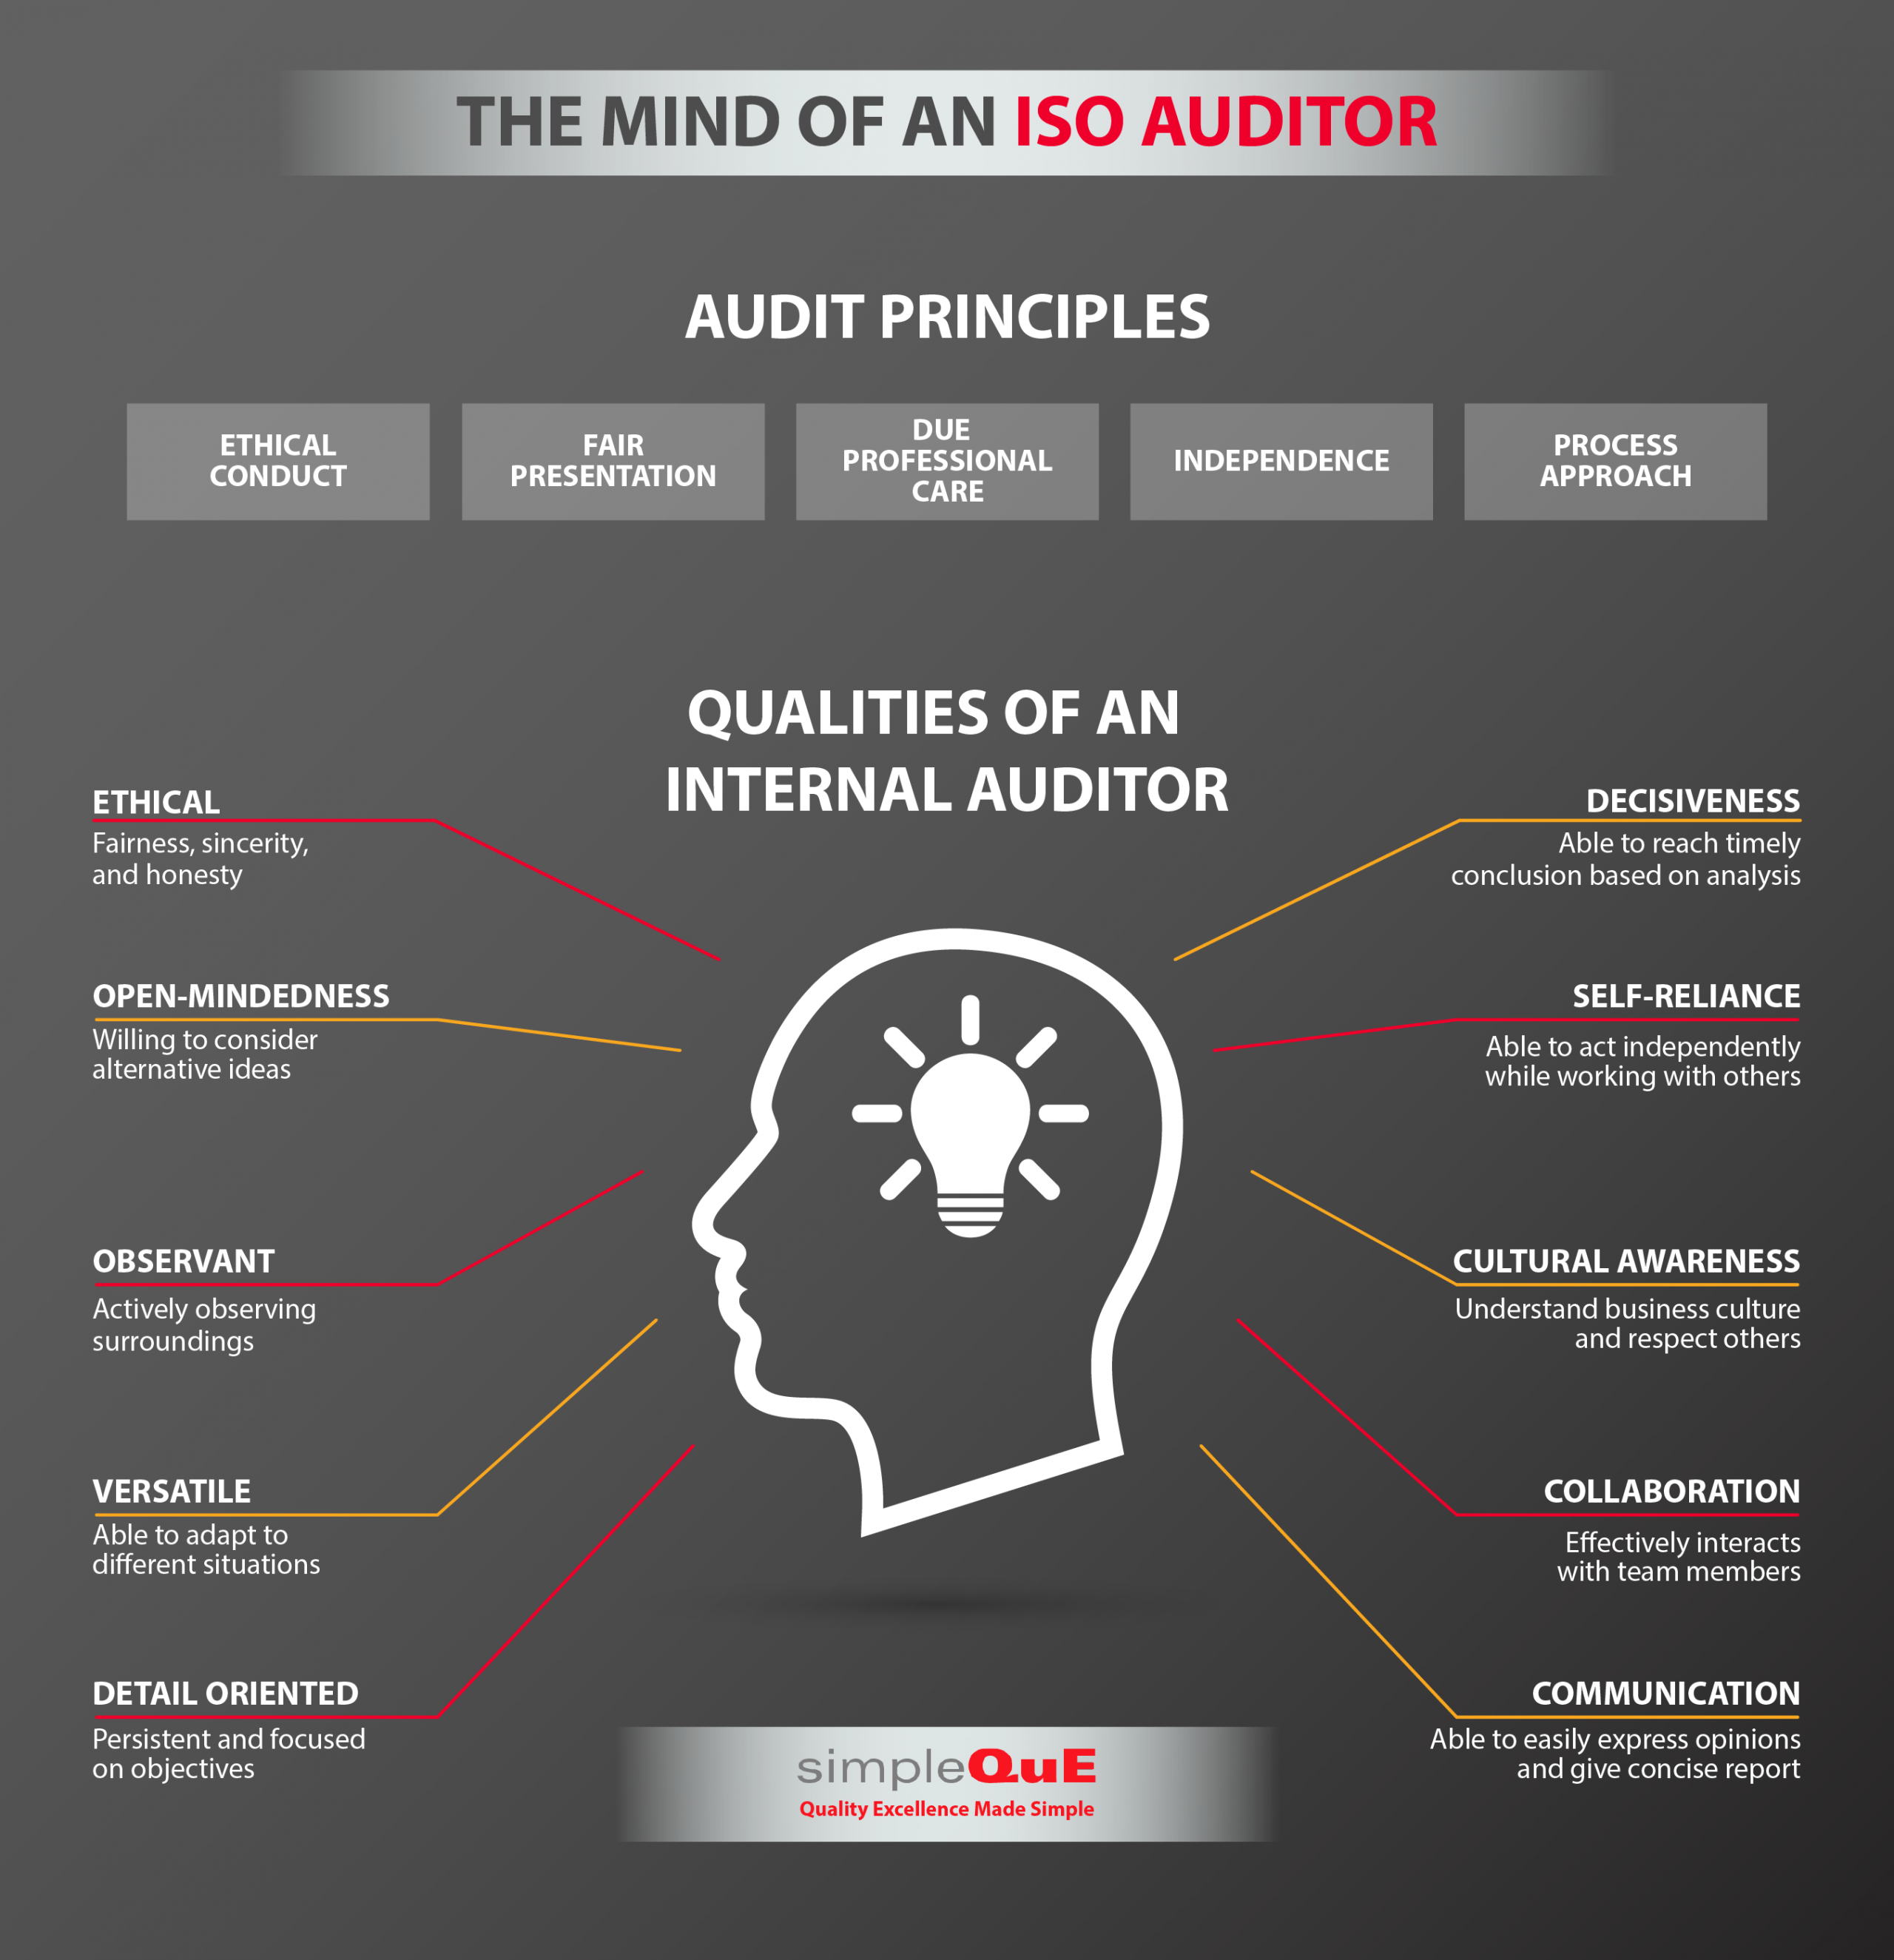 Qualities of an Internal Auditor